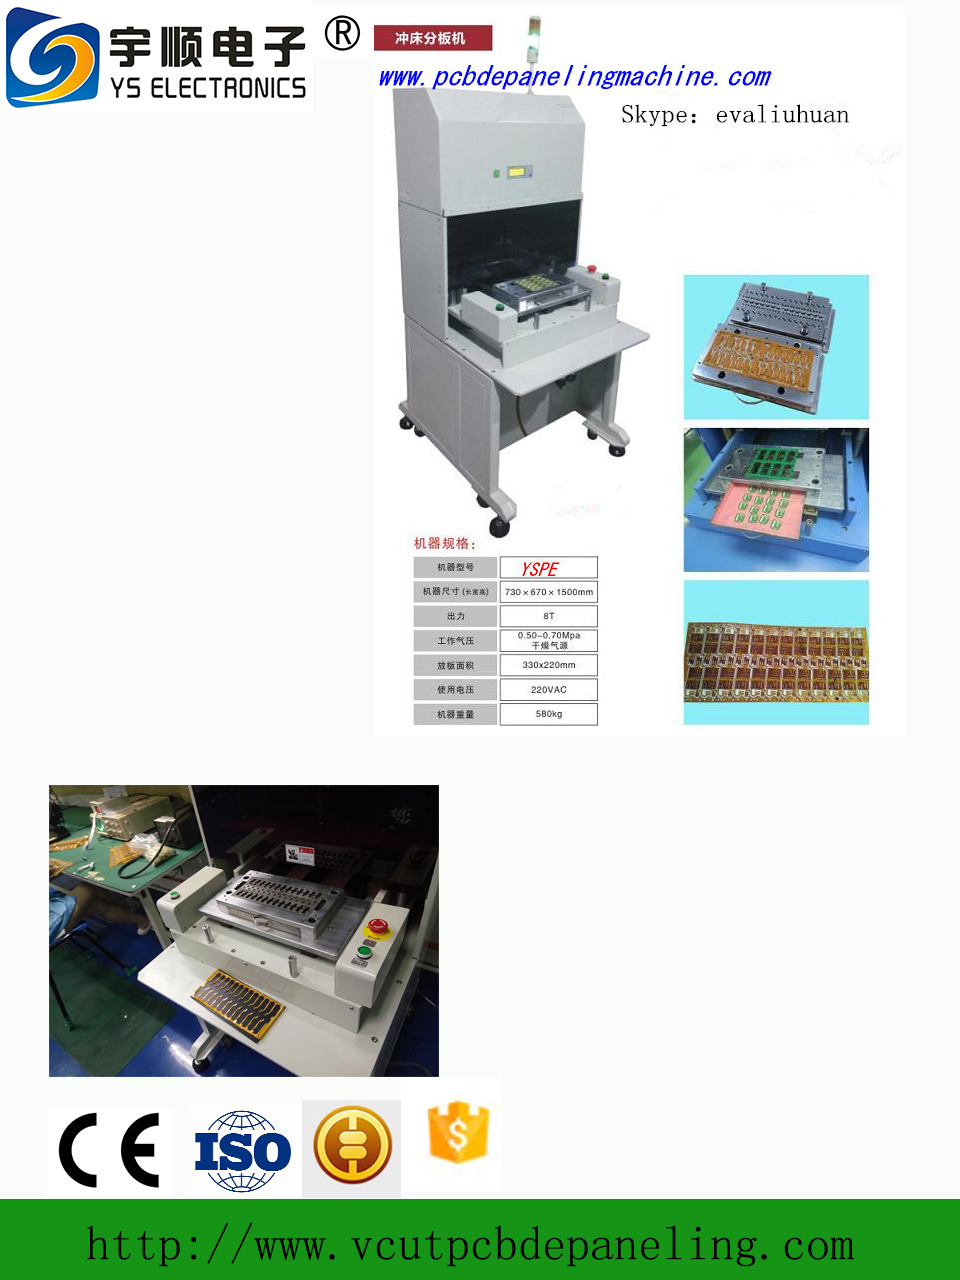 High quality flex PCB Punching Machine - High quality flex PCB Punching Machine Manufacturers, Suppliers and Exporters on pcb-router.com Electronics Production Machinery